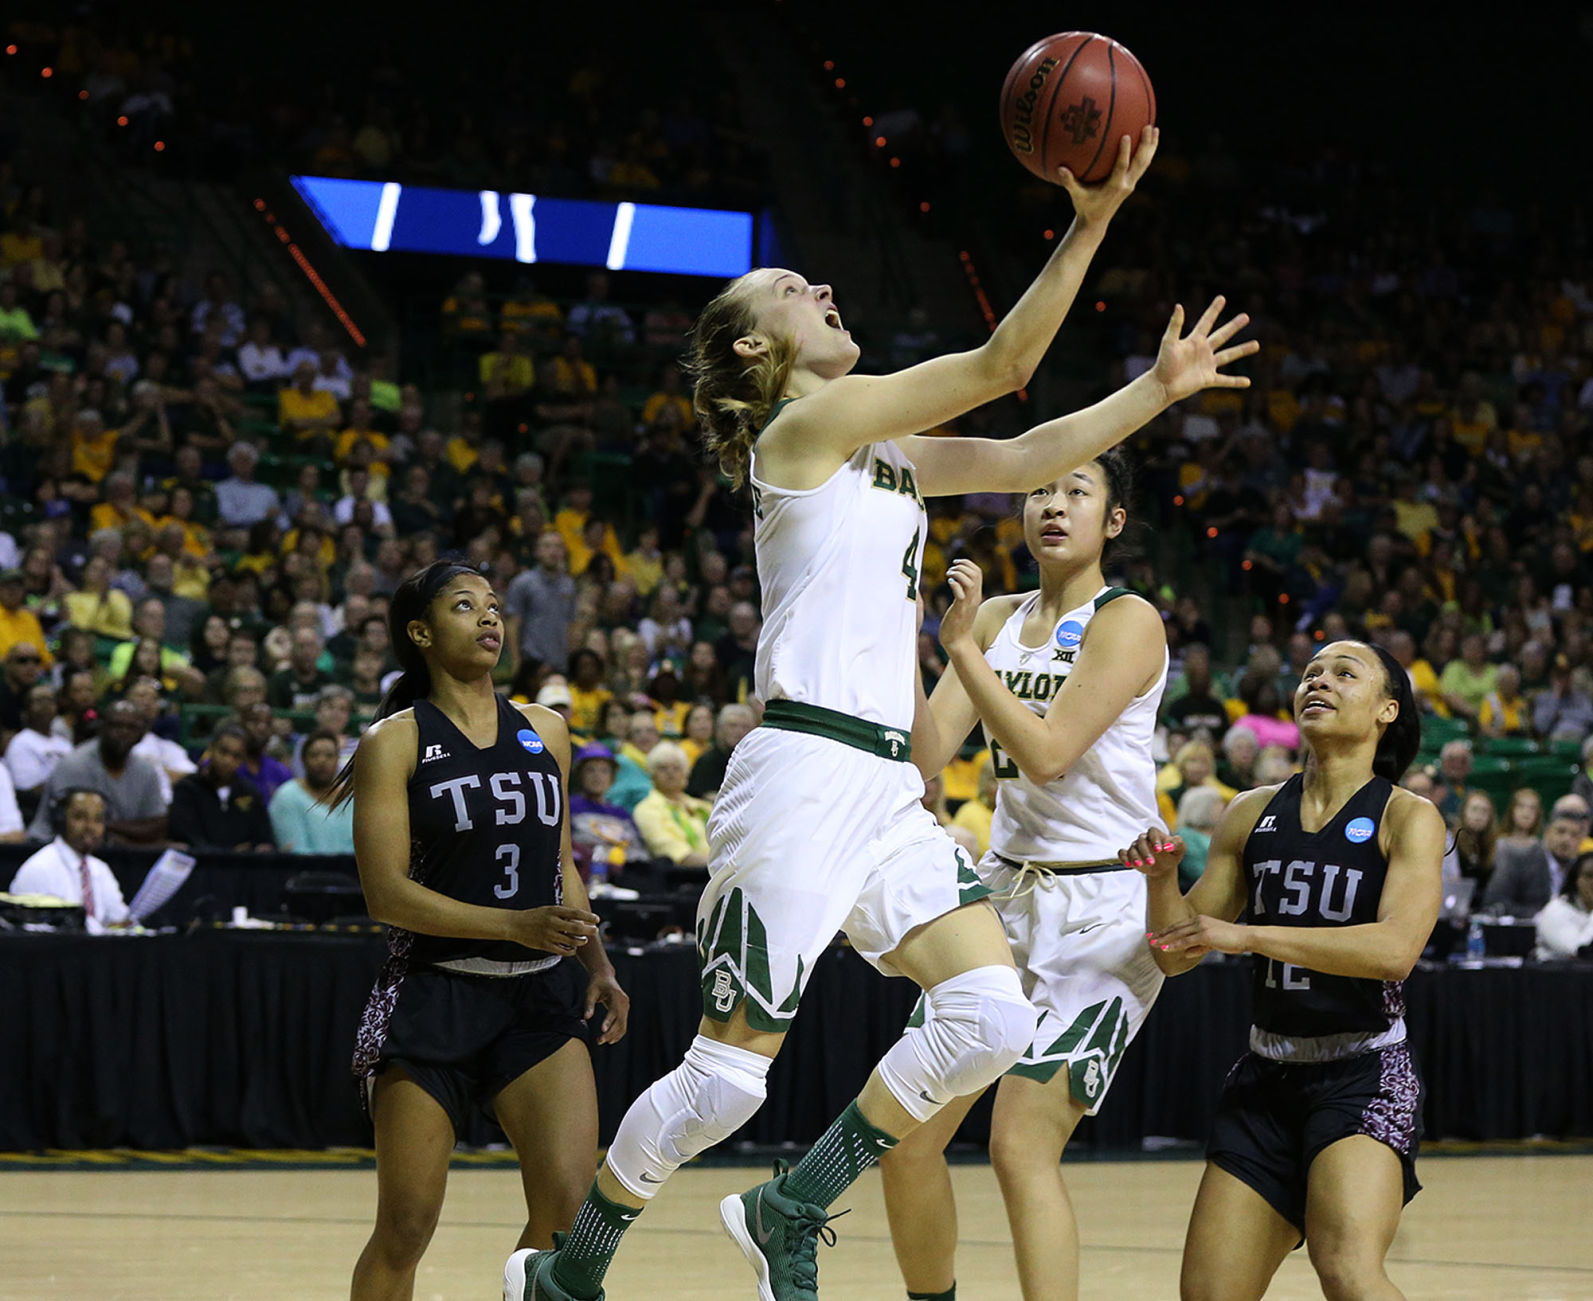 Baylor Texas Southern Lady Bears cruise past